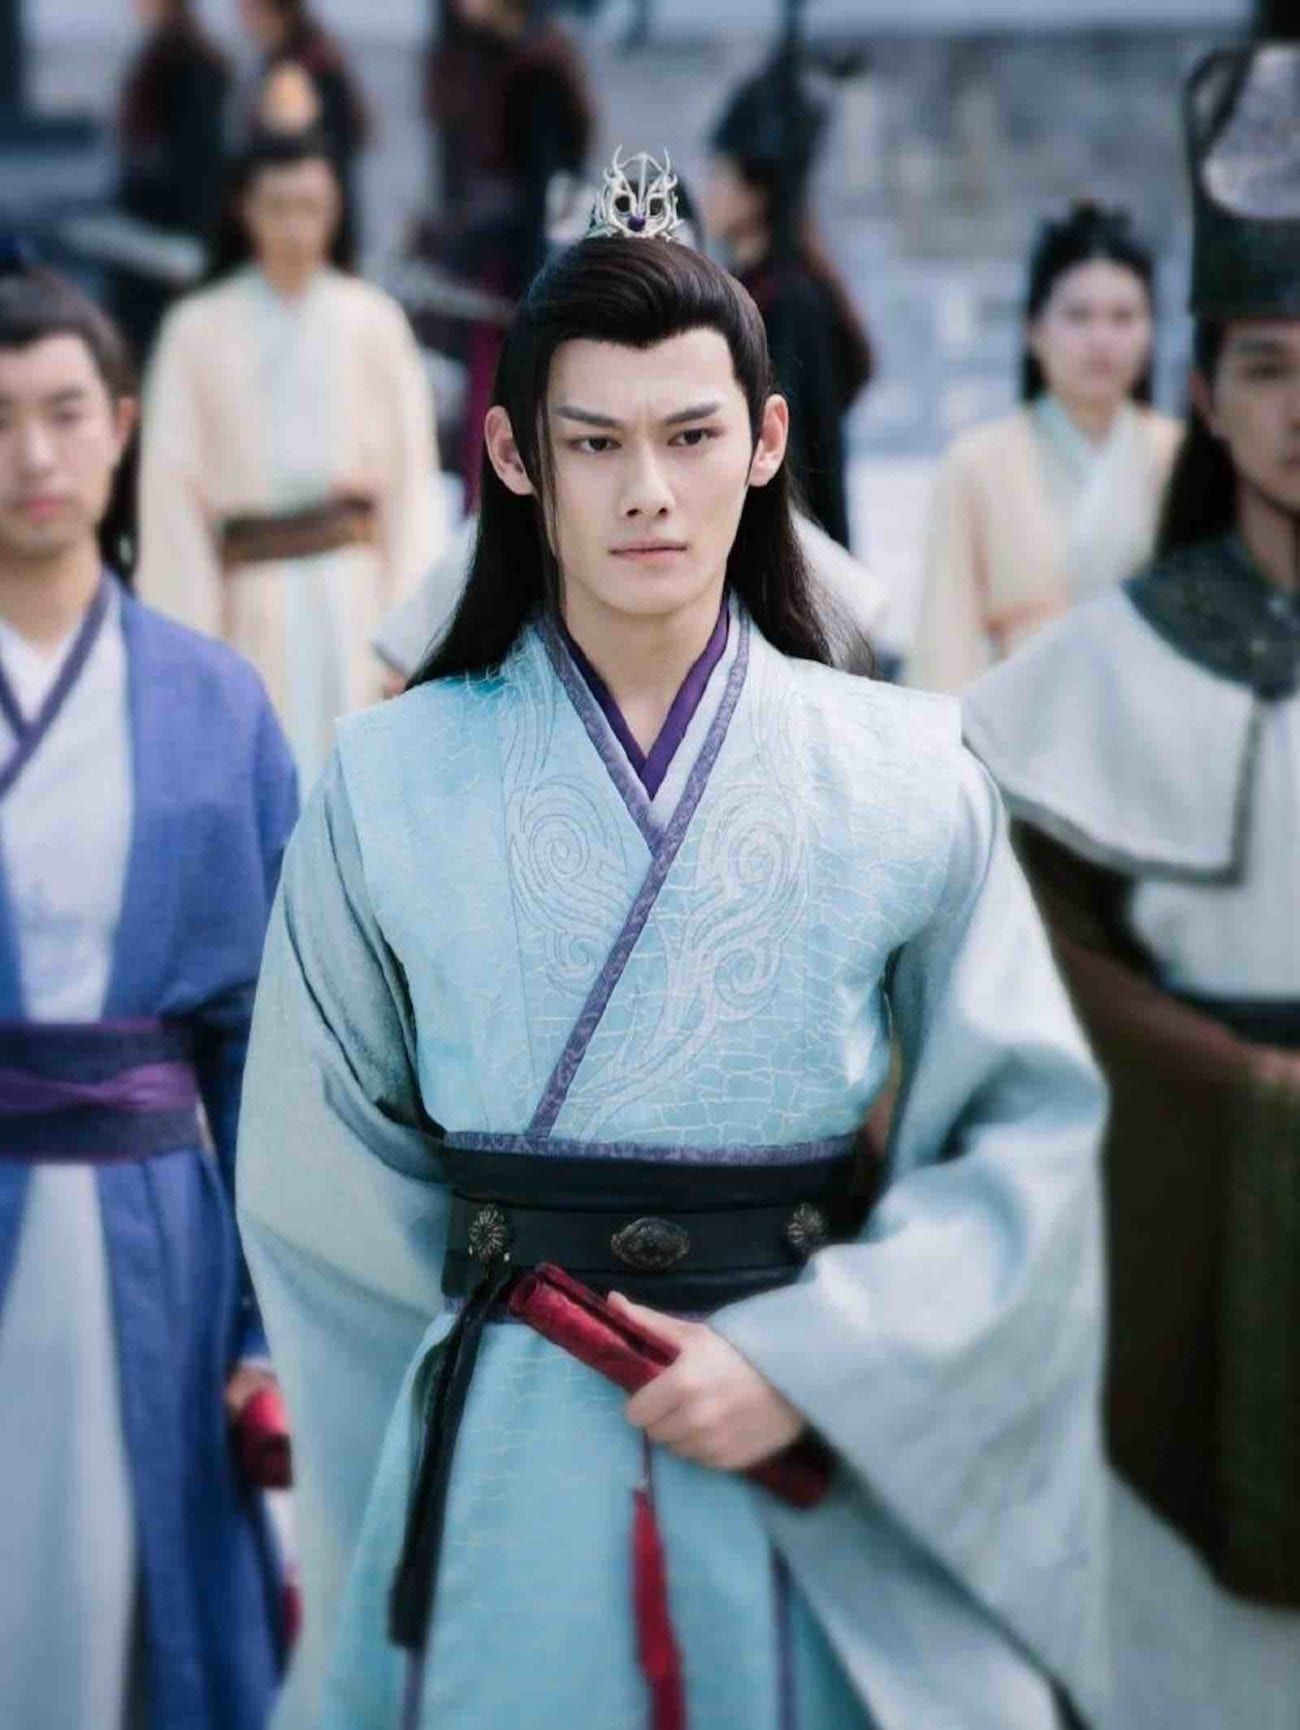 With a myriad of reasons to feel he is either the worst or wholly misunderstood. Here's what makes fans of 'The Untamed' so passionate about Jiang Cheng.